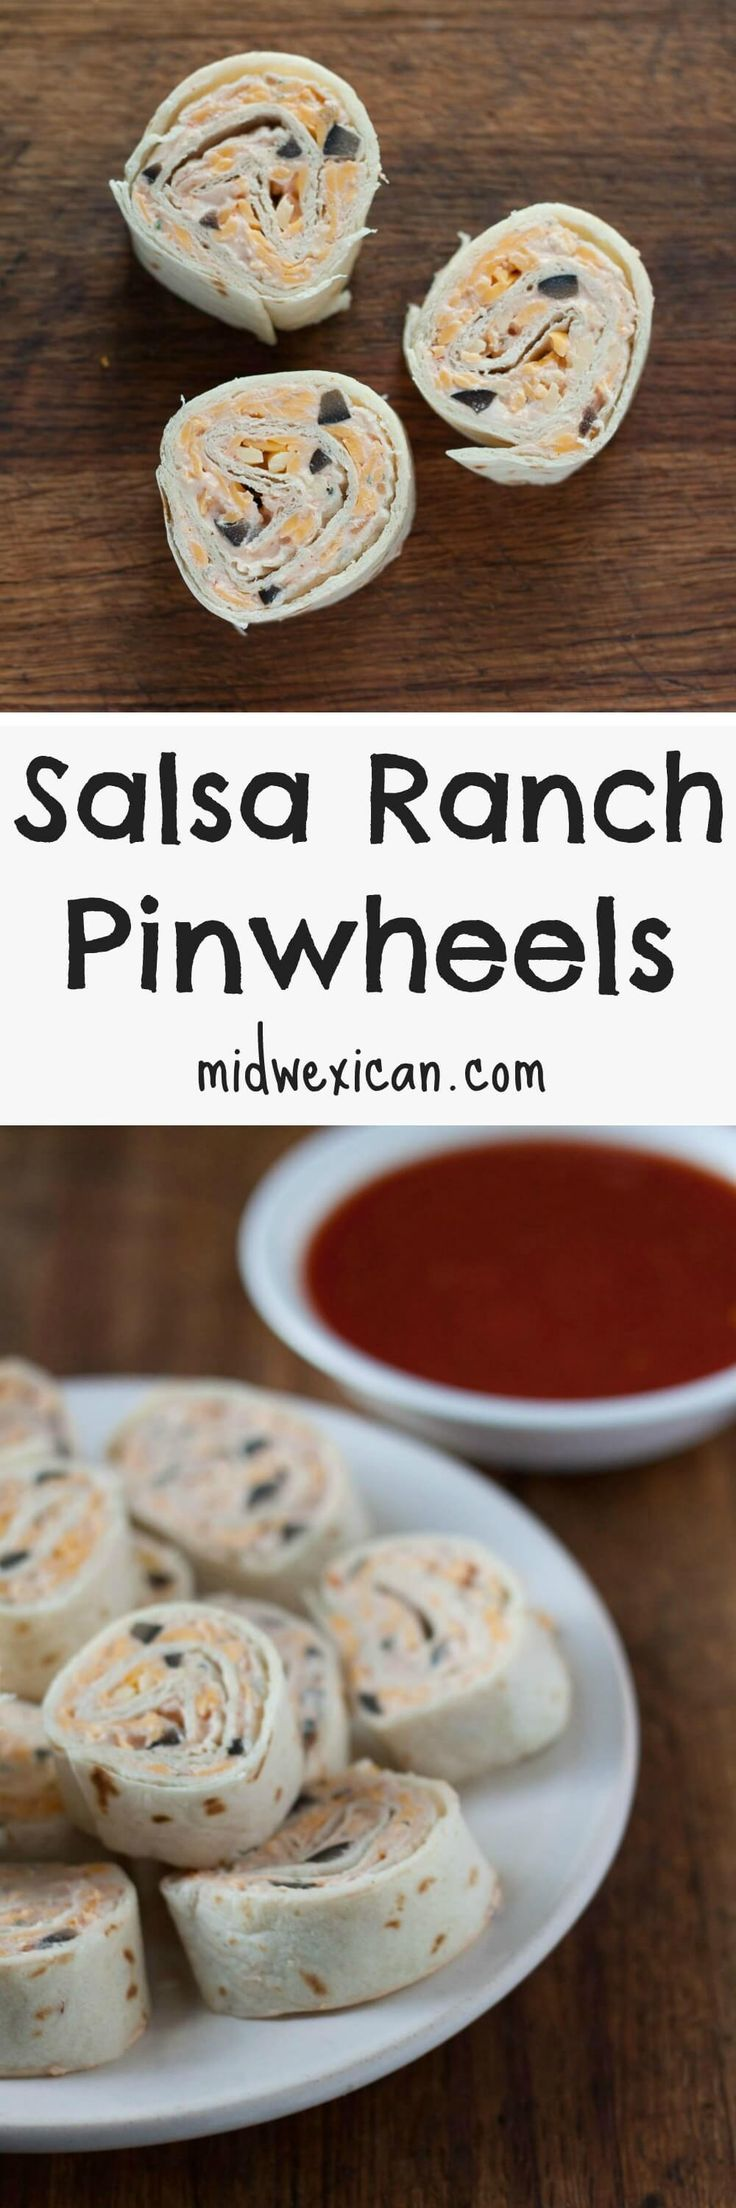 Salsa Ranch Pinwheels are perfect for the lover of all things pinwheel, taco seasoned, and coated in ranch dressing,